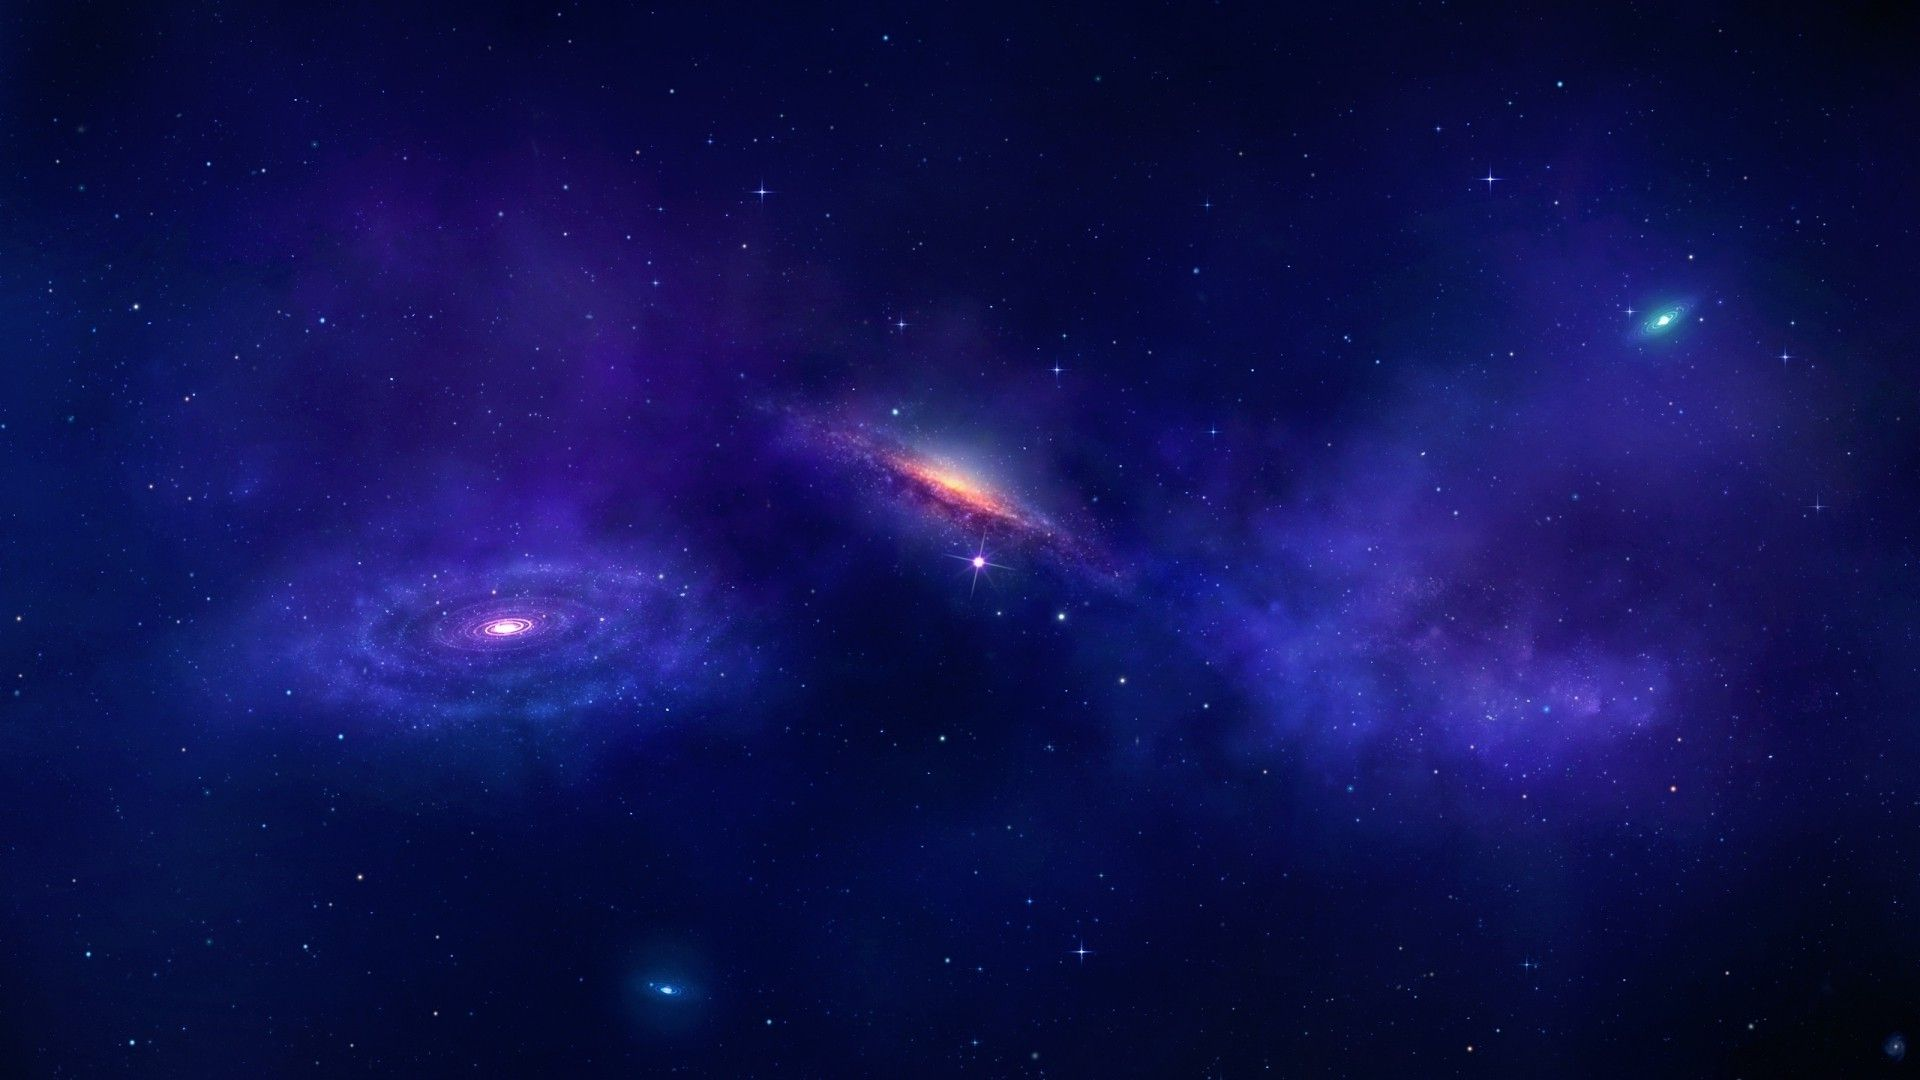 75 Blue Galaxy Wallpapers On Wallpaperplay Blue Galaxy Wallpaper Galaxy Wallpaper Galaxy S8 Wallpaper